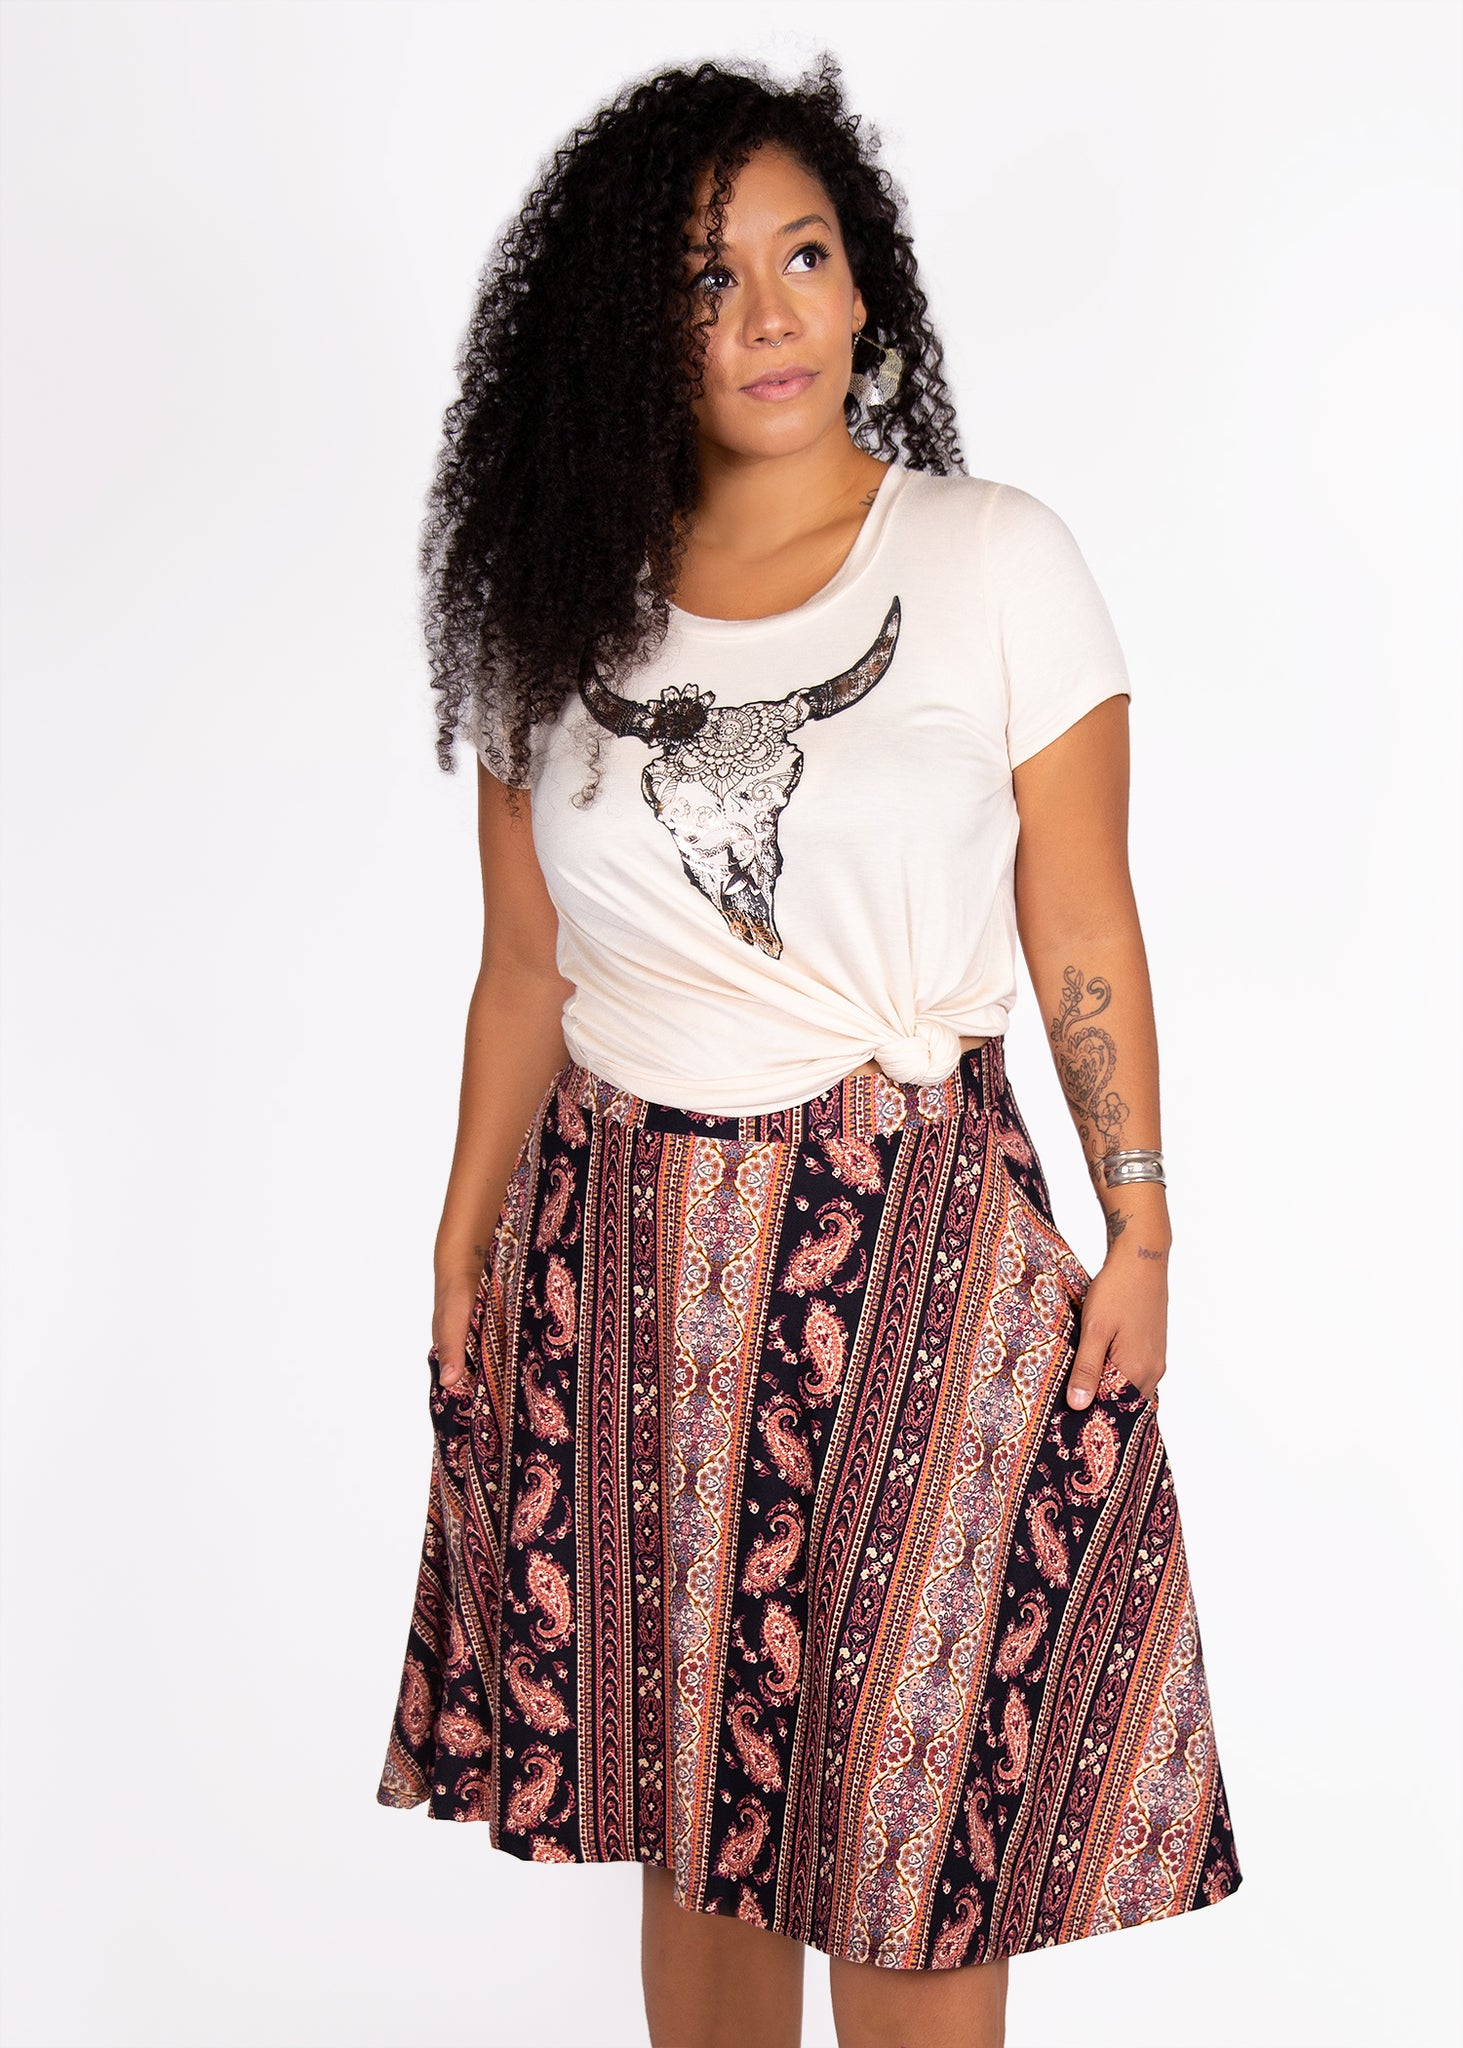 comfortable-chaos-boutique - Bloom Skirt - Paisley Print - Skirt